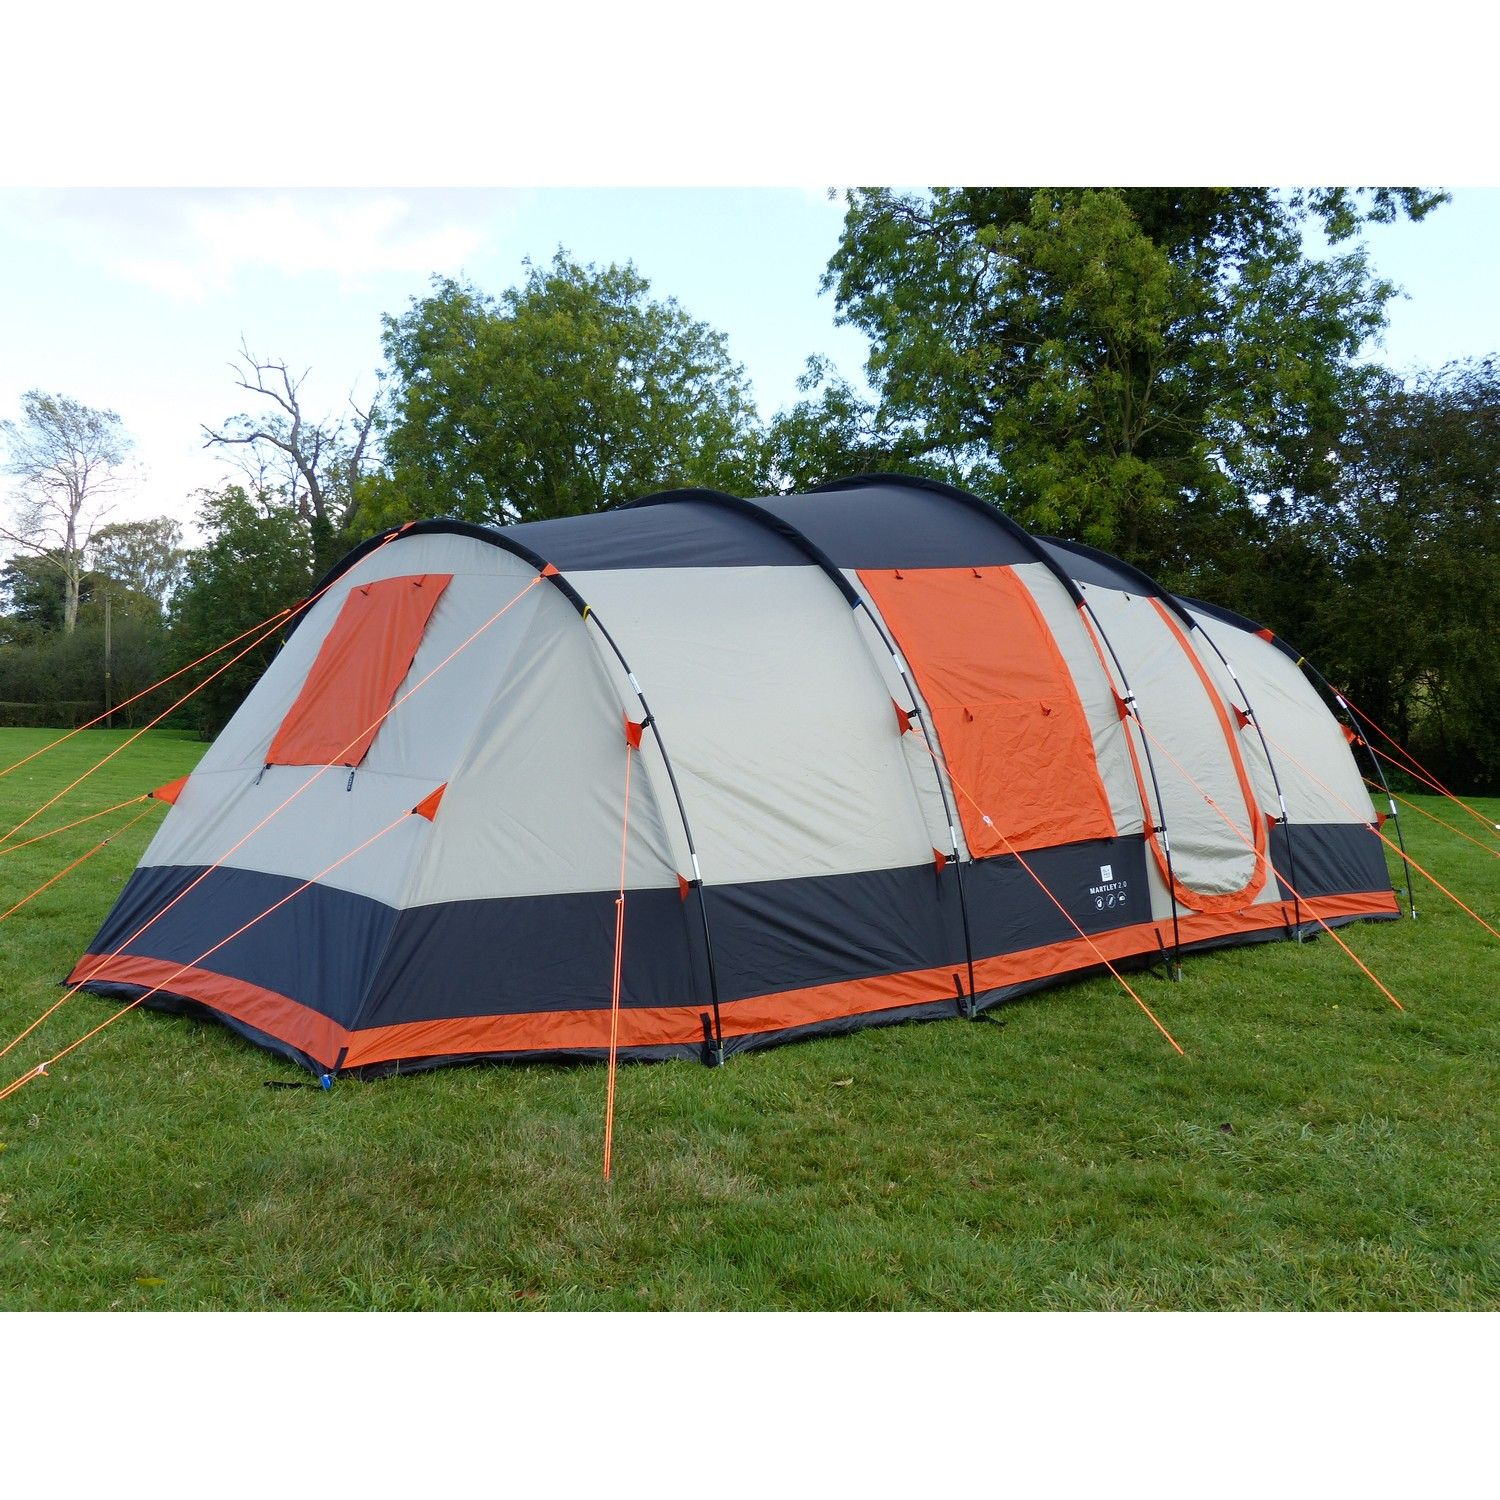 Olpro Martley 6 Berth Family Tunnel Tent  sc 1 st  Pinterest & Olpro Martley 6 Berth Family Tunnel Tent | CWS ? Family Camping ...